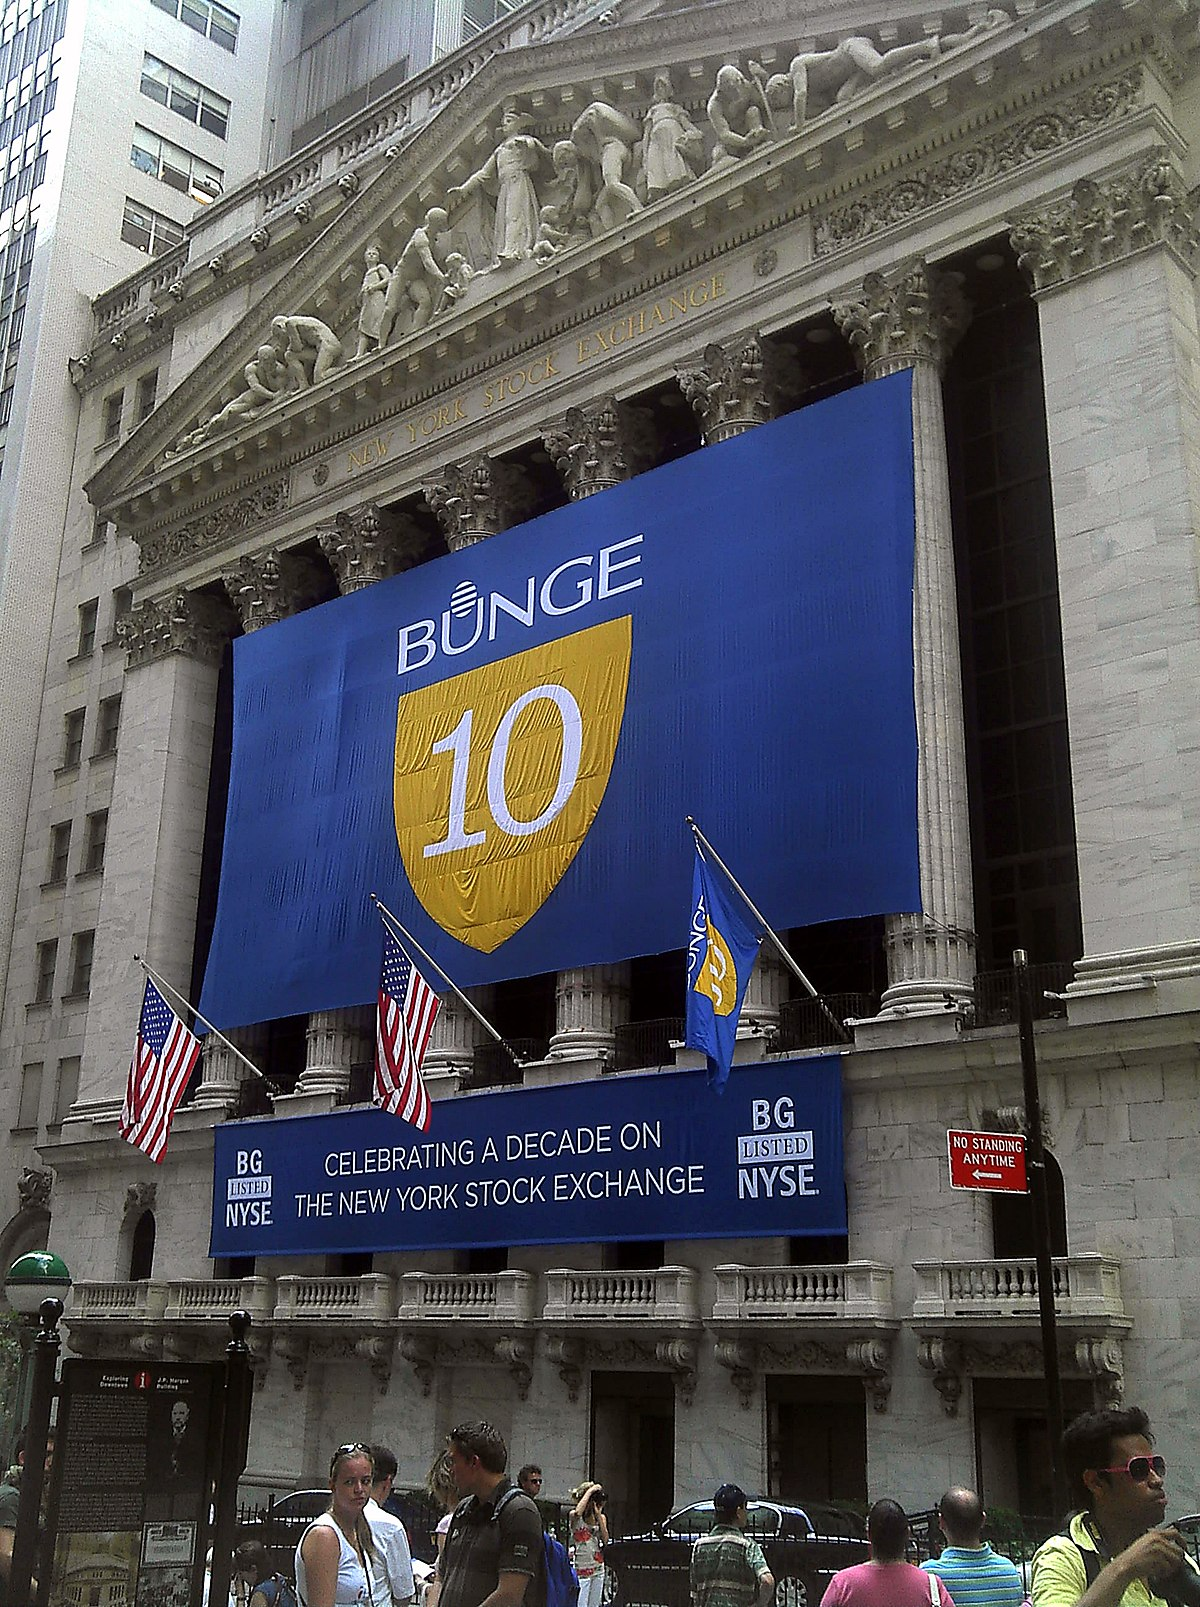 Bunge Limited